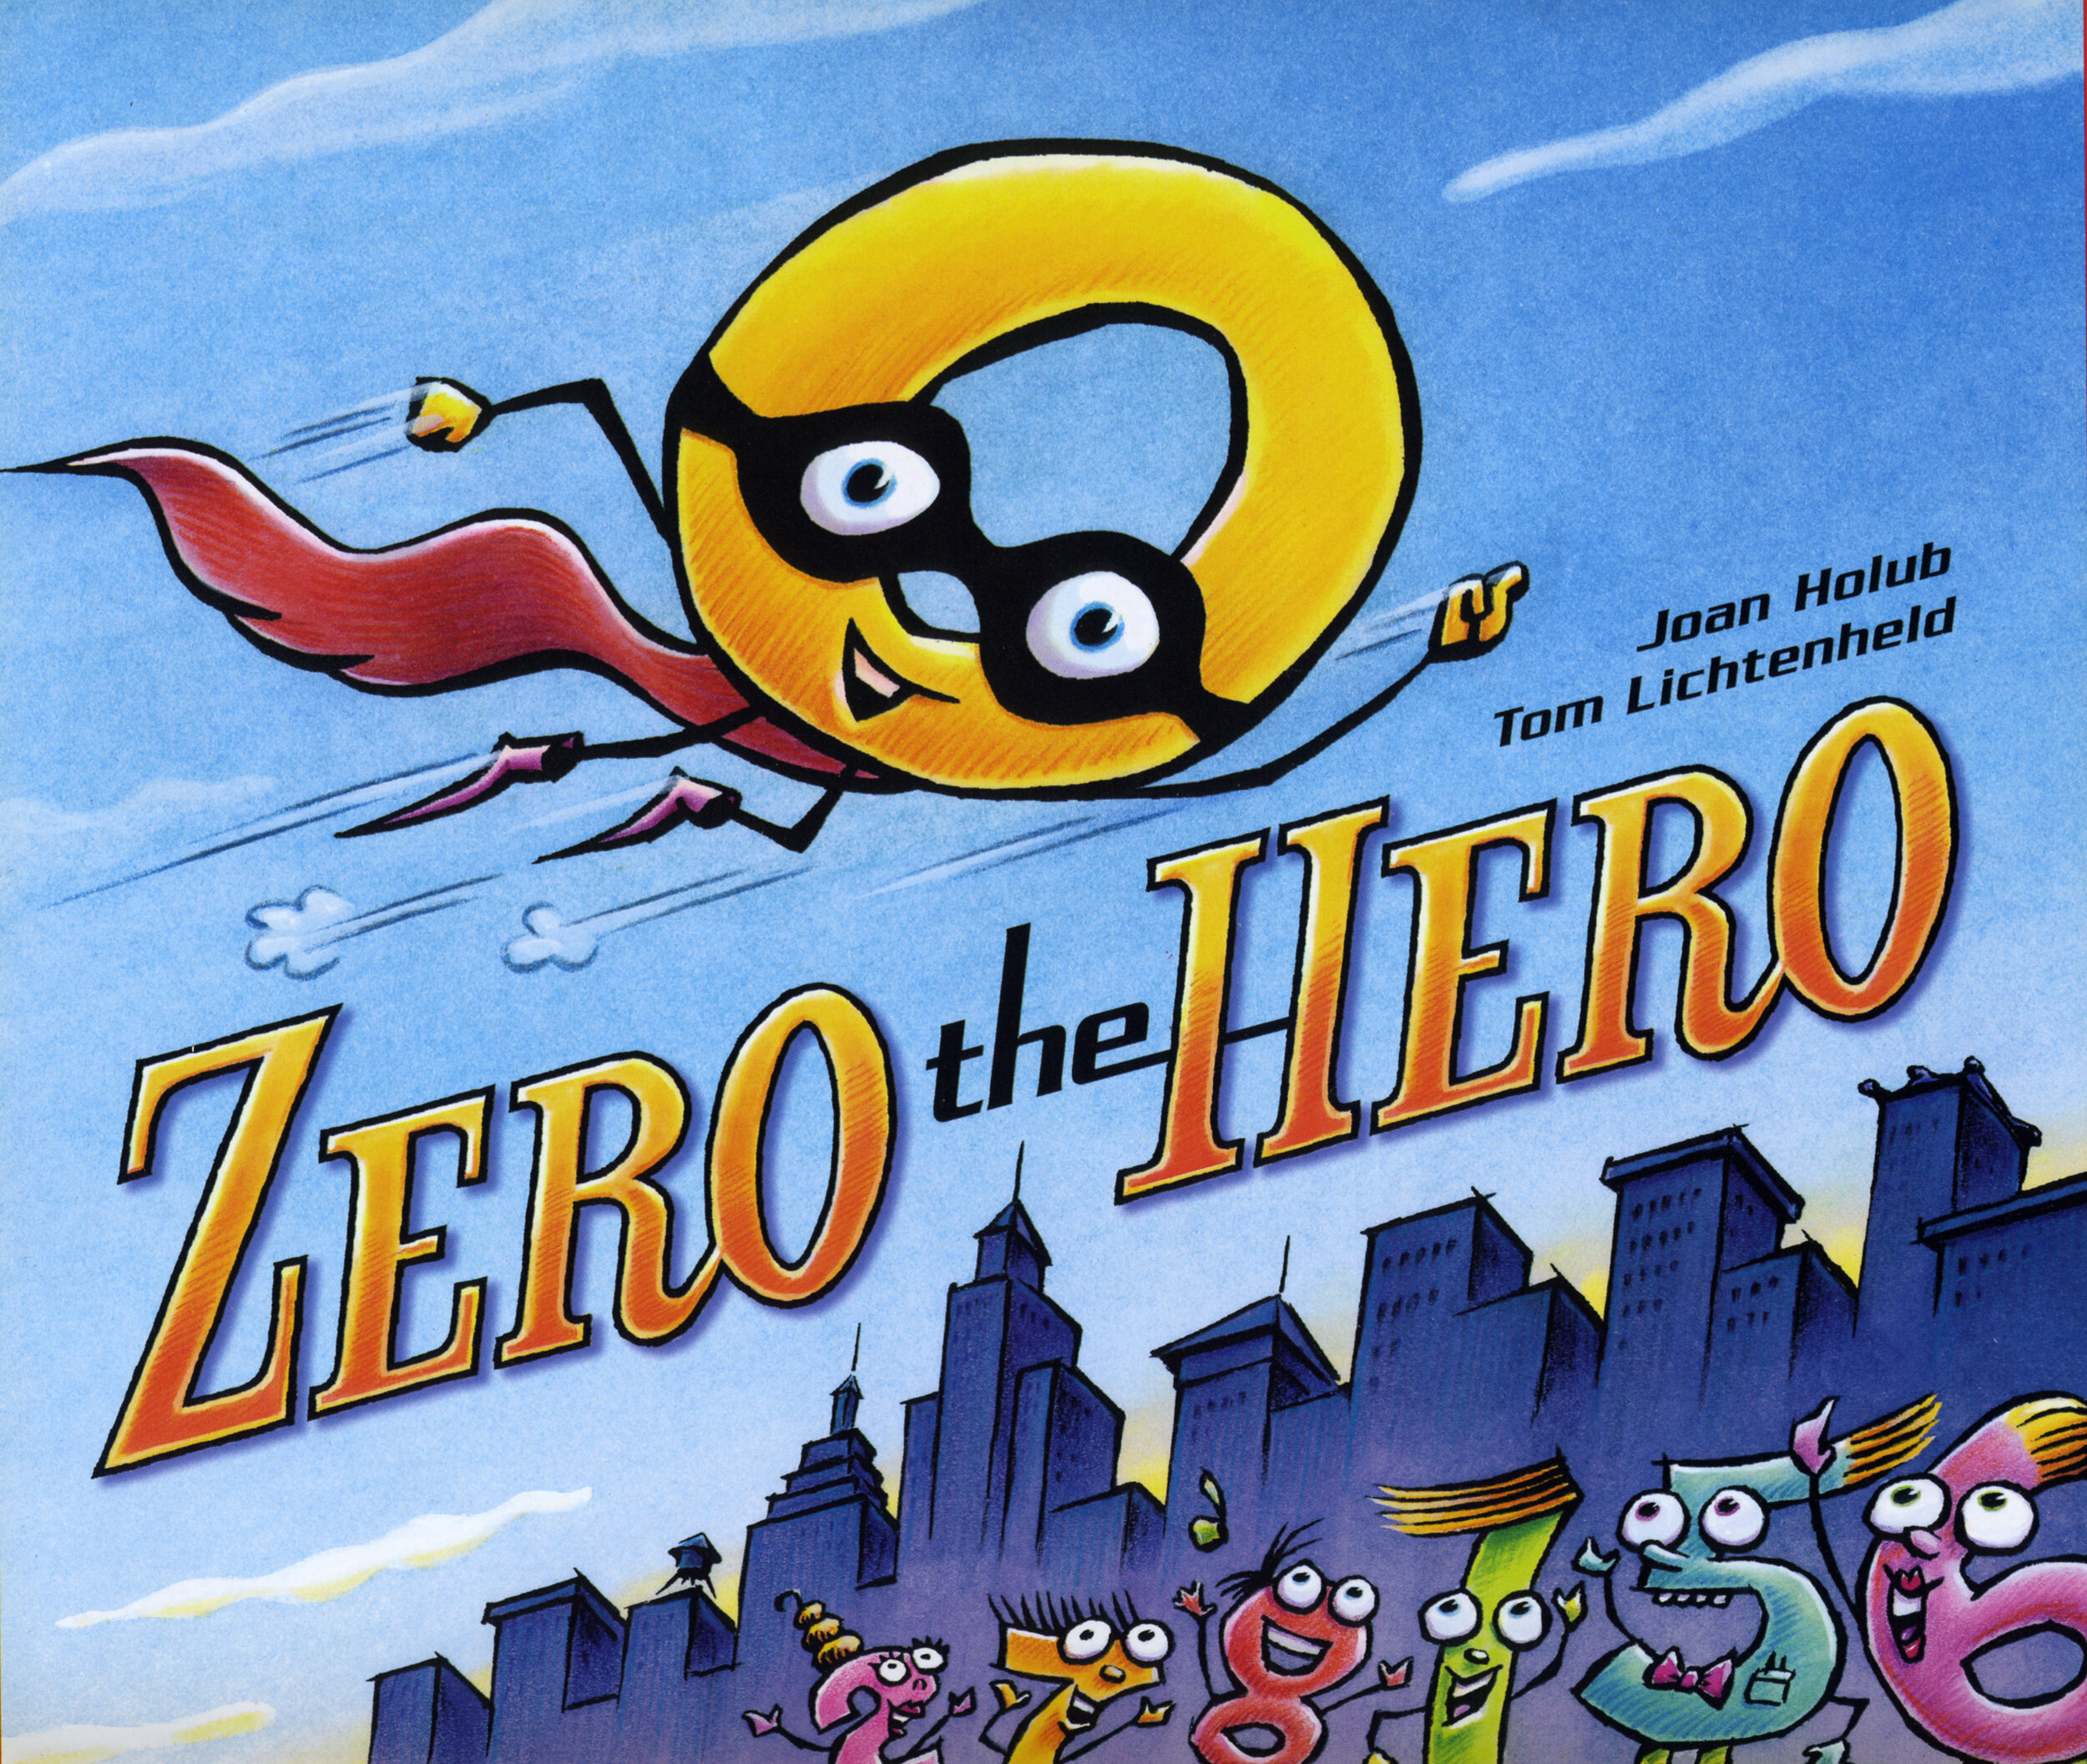 Zero the Hero, a picture book by Joan Holub and Tom Lichtenheld